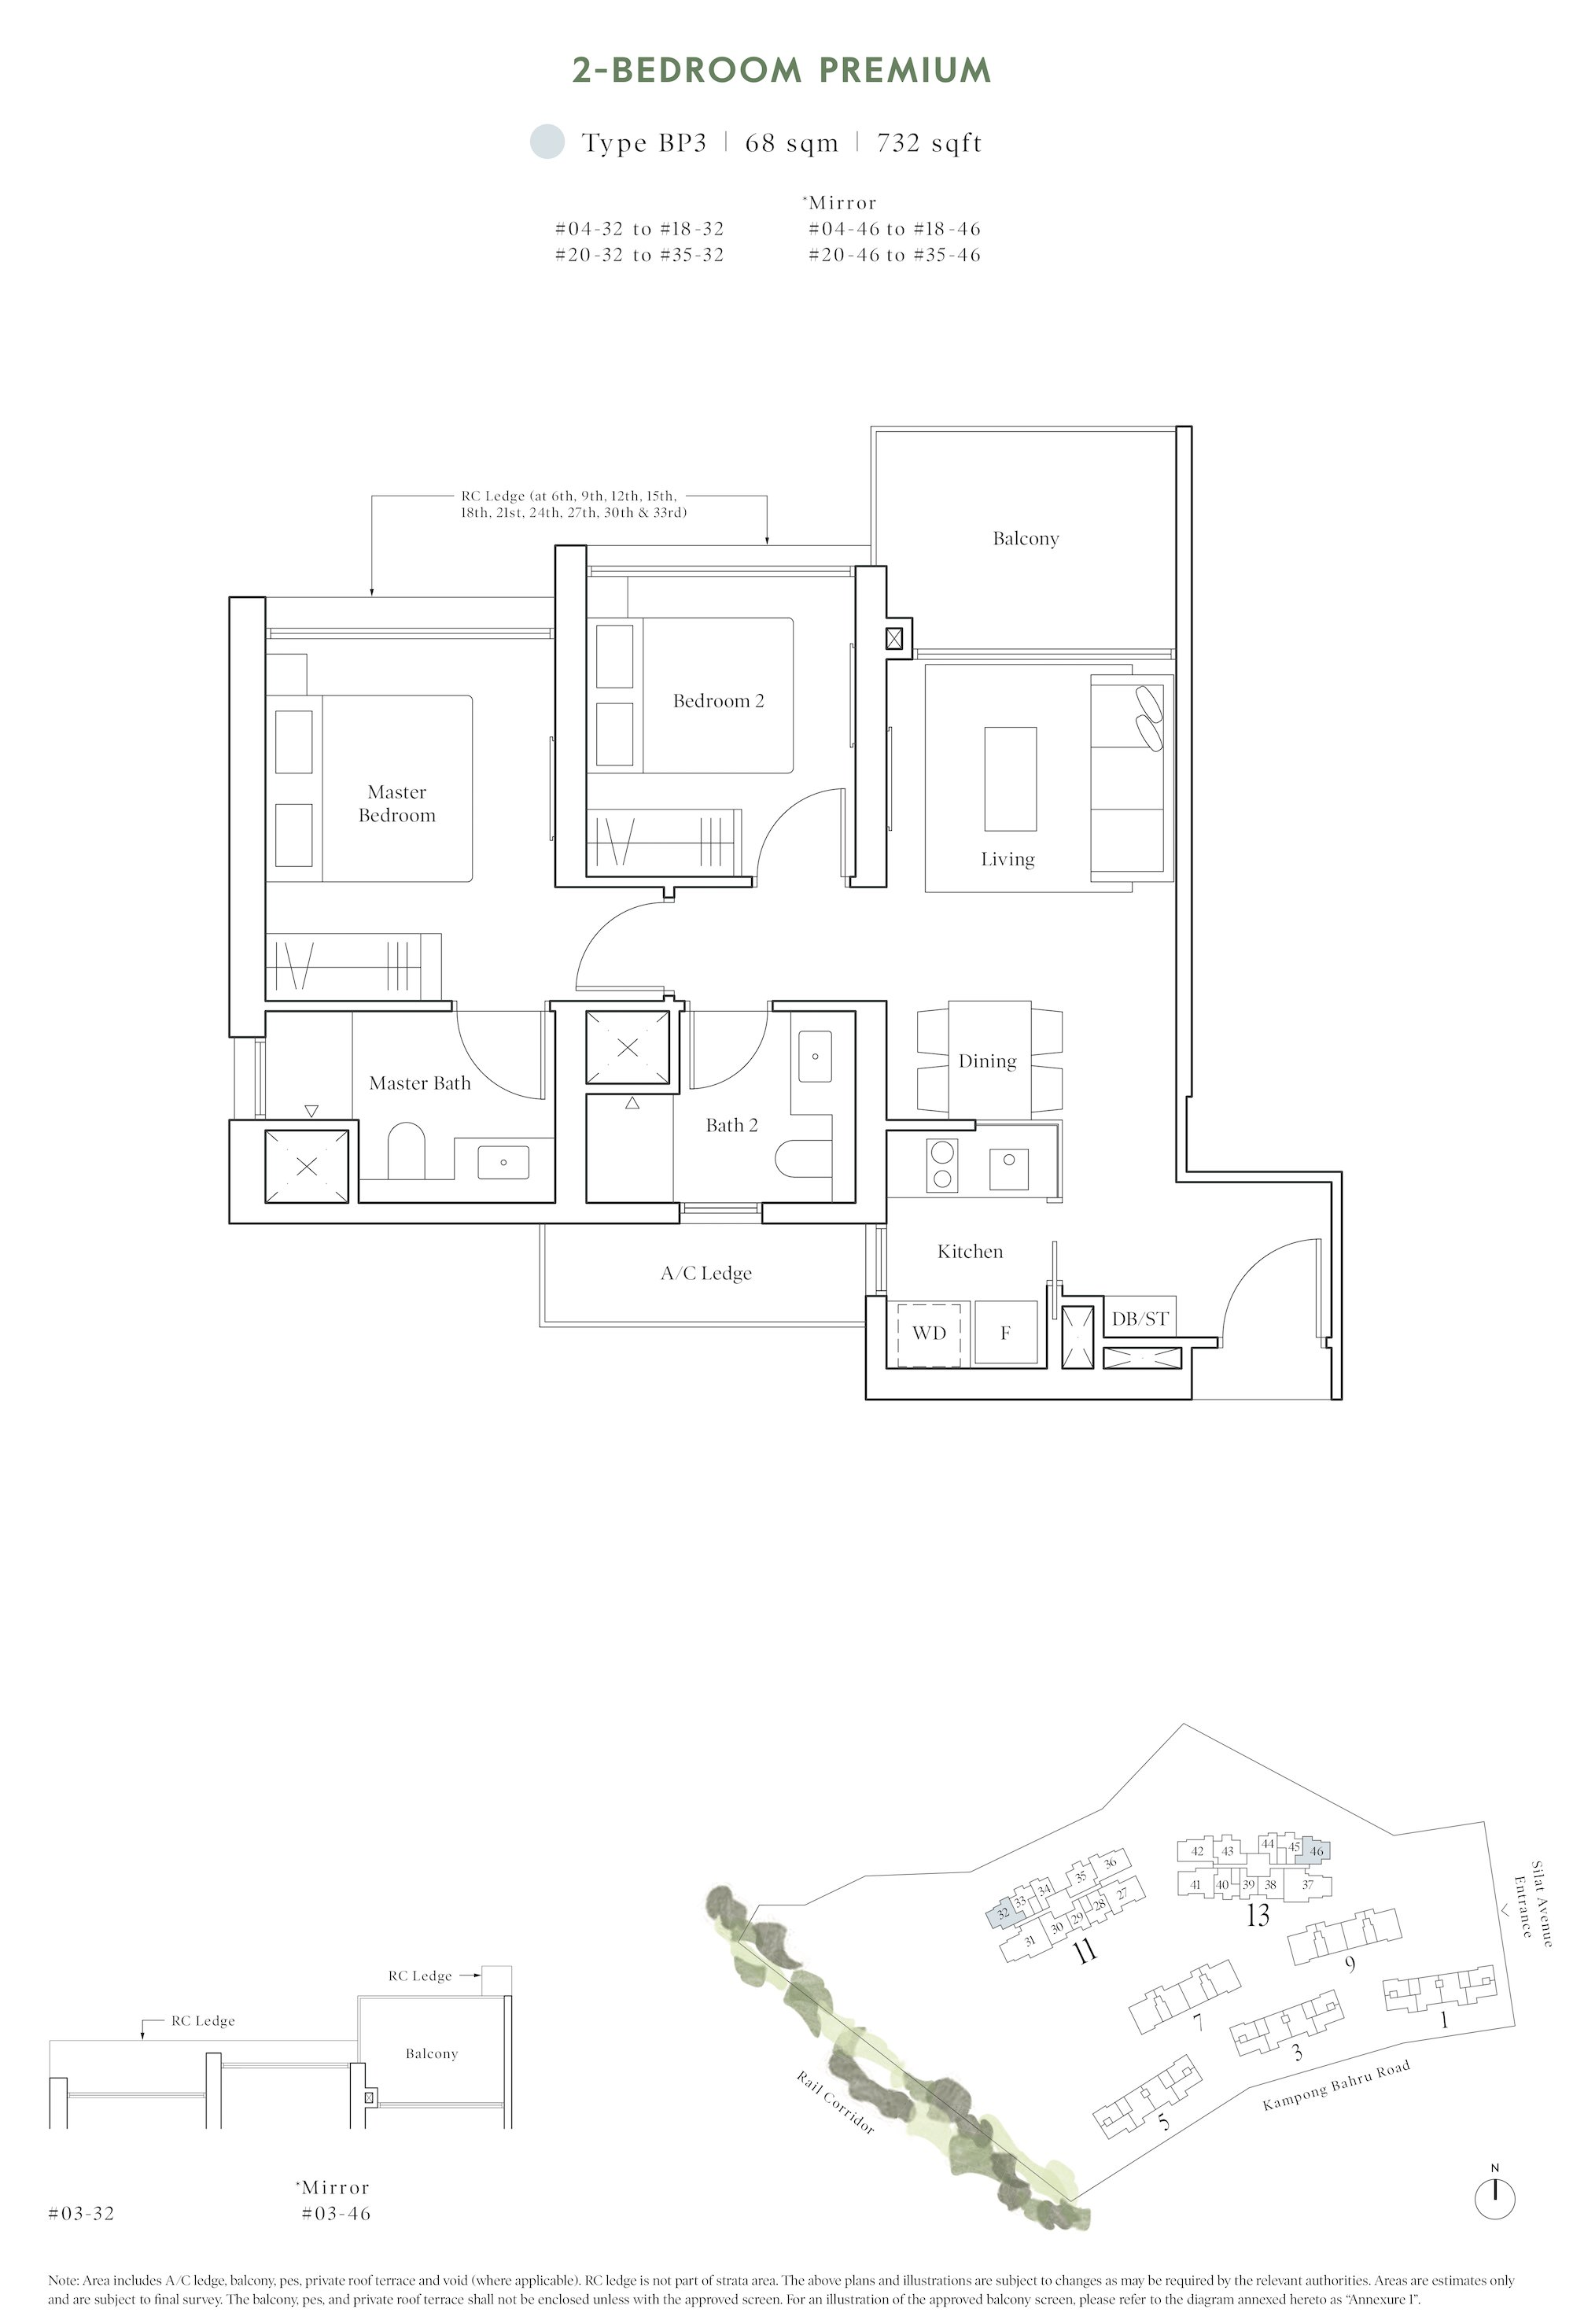 Avenue South Residence 南峰雅苑 horizon floor plan 2-bedroom bp3